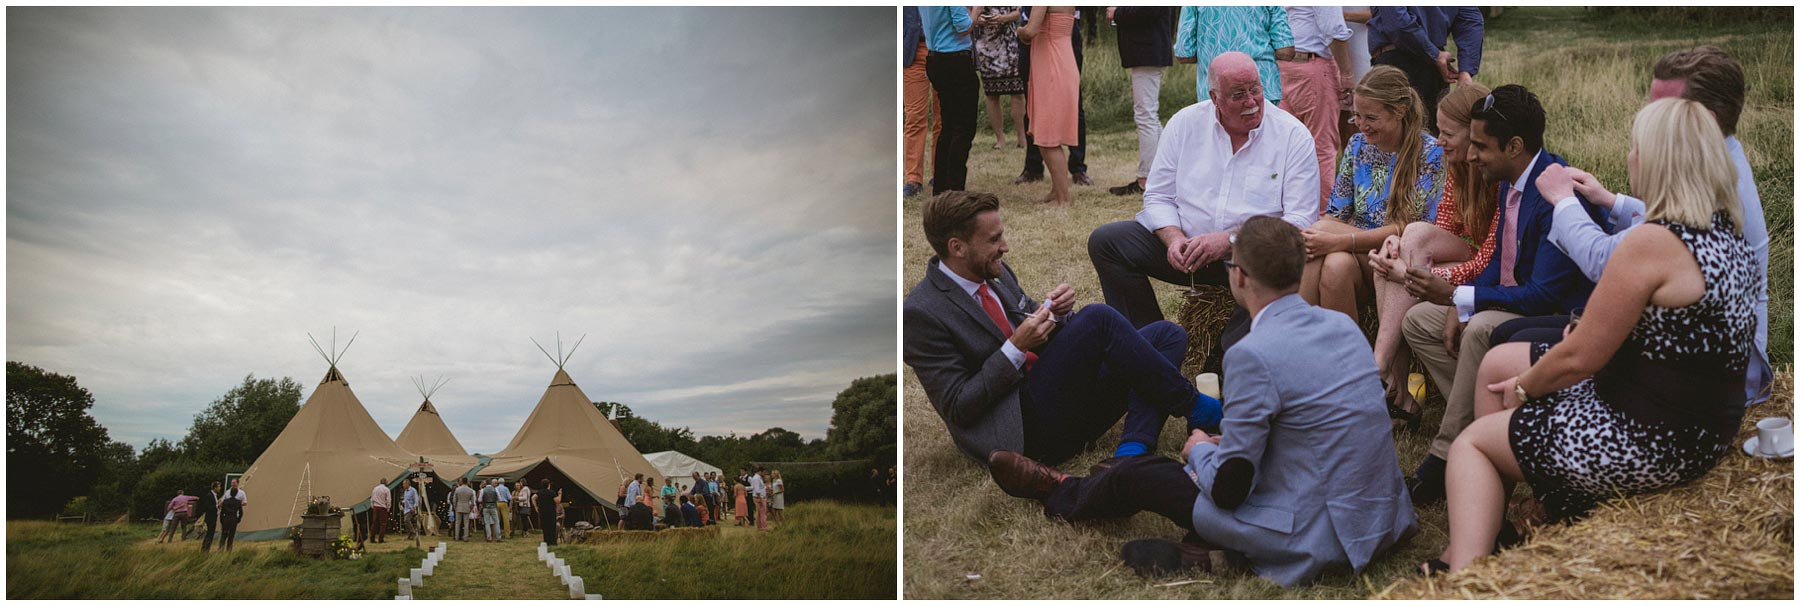 Kent-Festival-Tipi-wedding-photography_0176